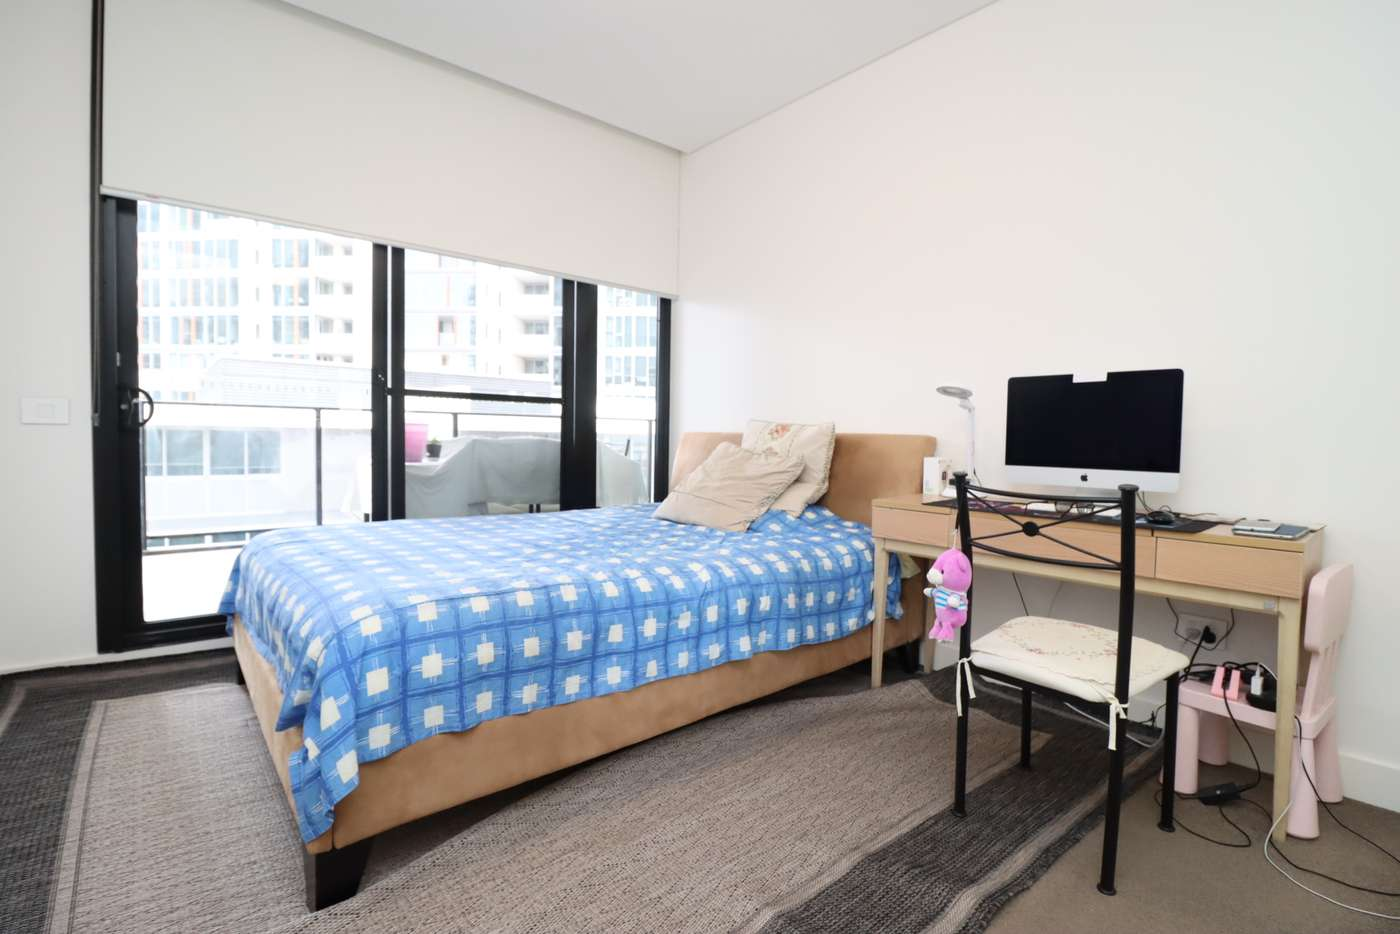 Sixth view of Homely apartment listing, 813/13 Verona Dr, Wentworth Point NSW 2127